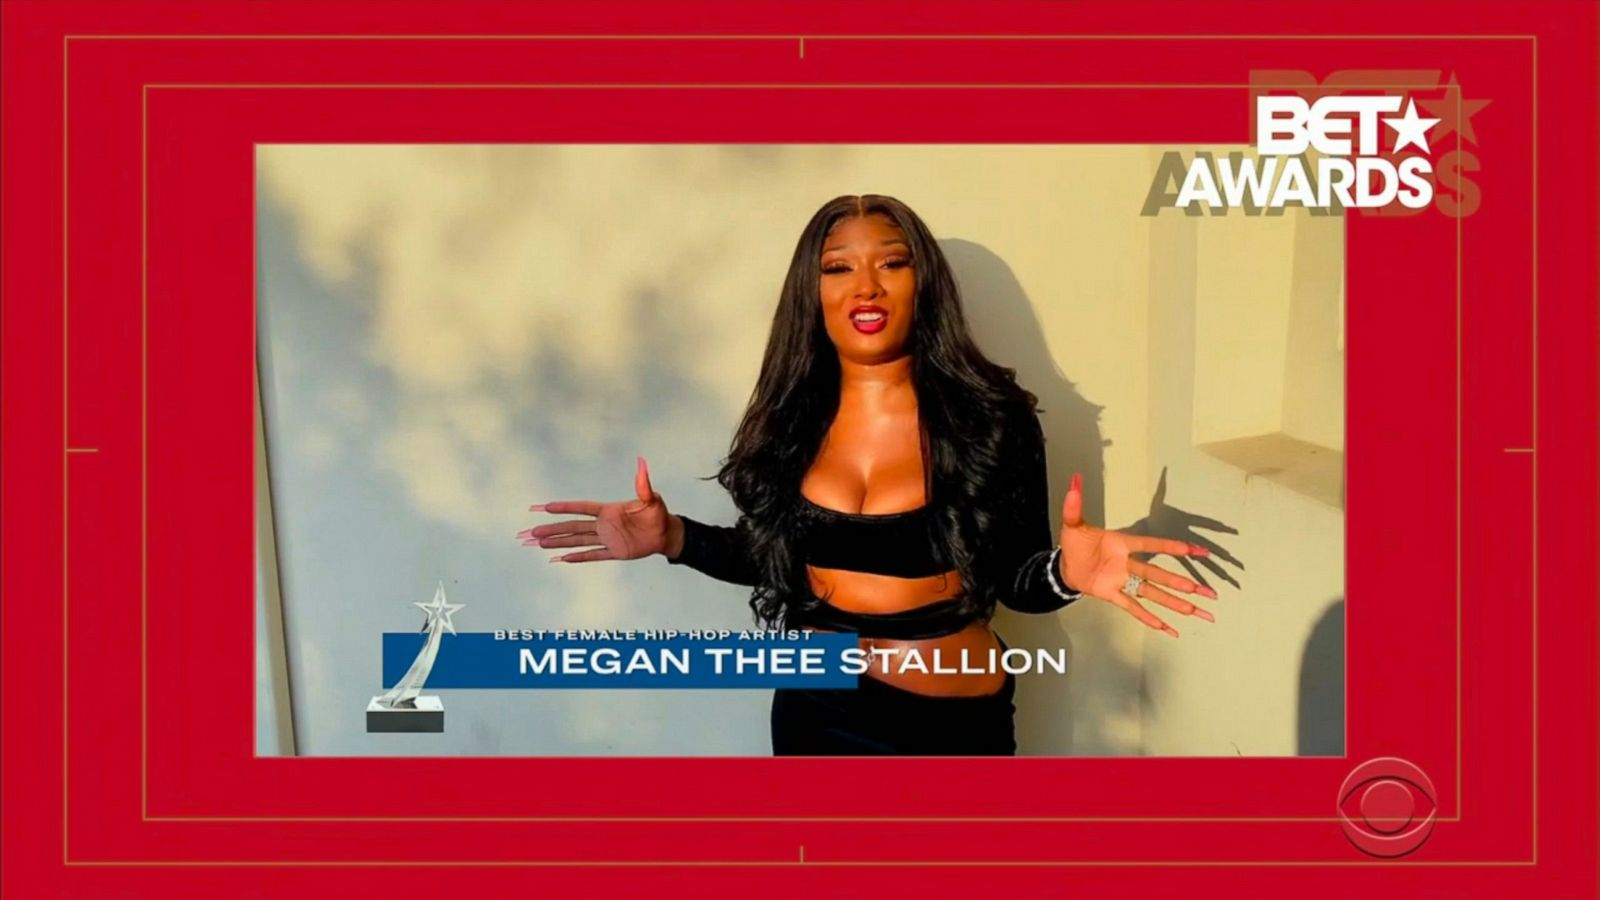 Megan Thee Stallion clinches BET Award Best Female Hip-Hop Artist